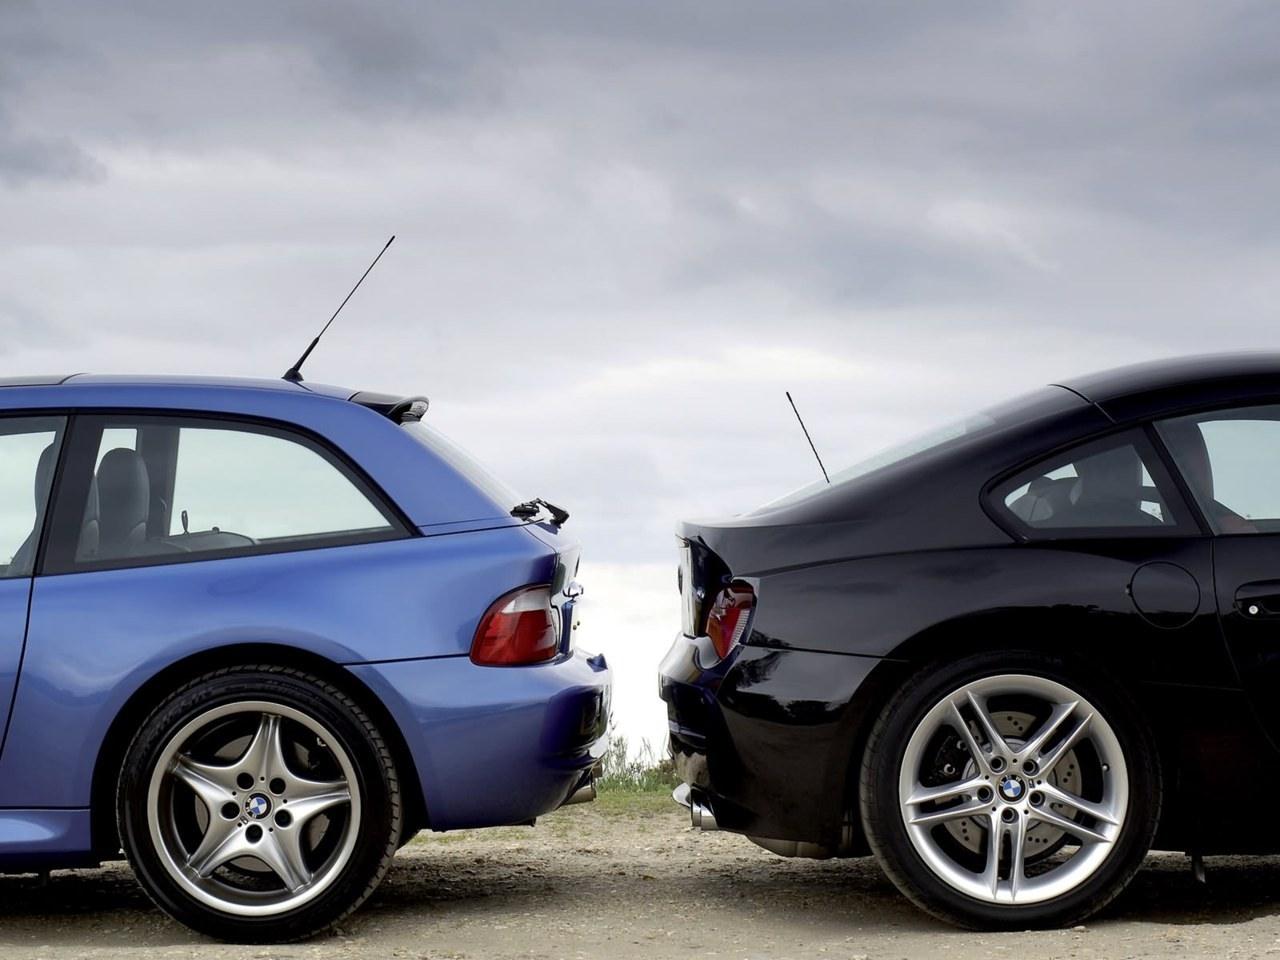 BMW Z3 & Z4 M Coupes - Space Between